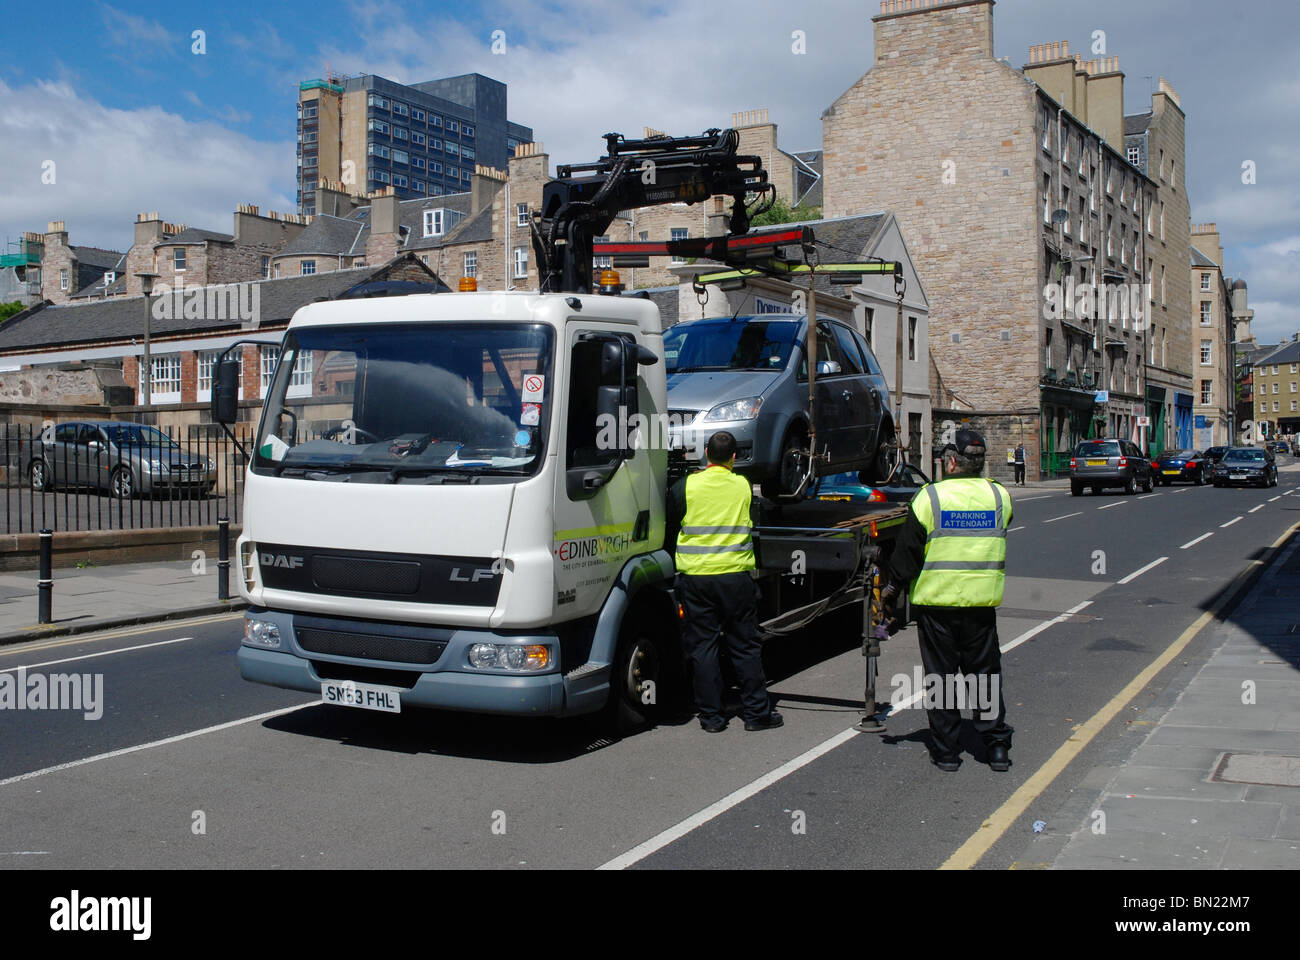 Staff from Edinburgh City Council impound an illegally parked car. - Stock Image